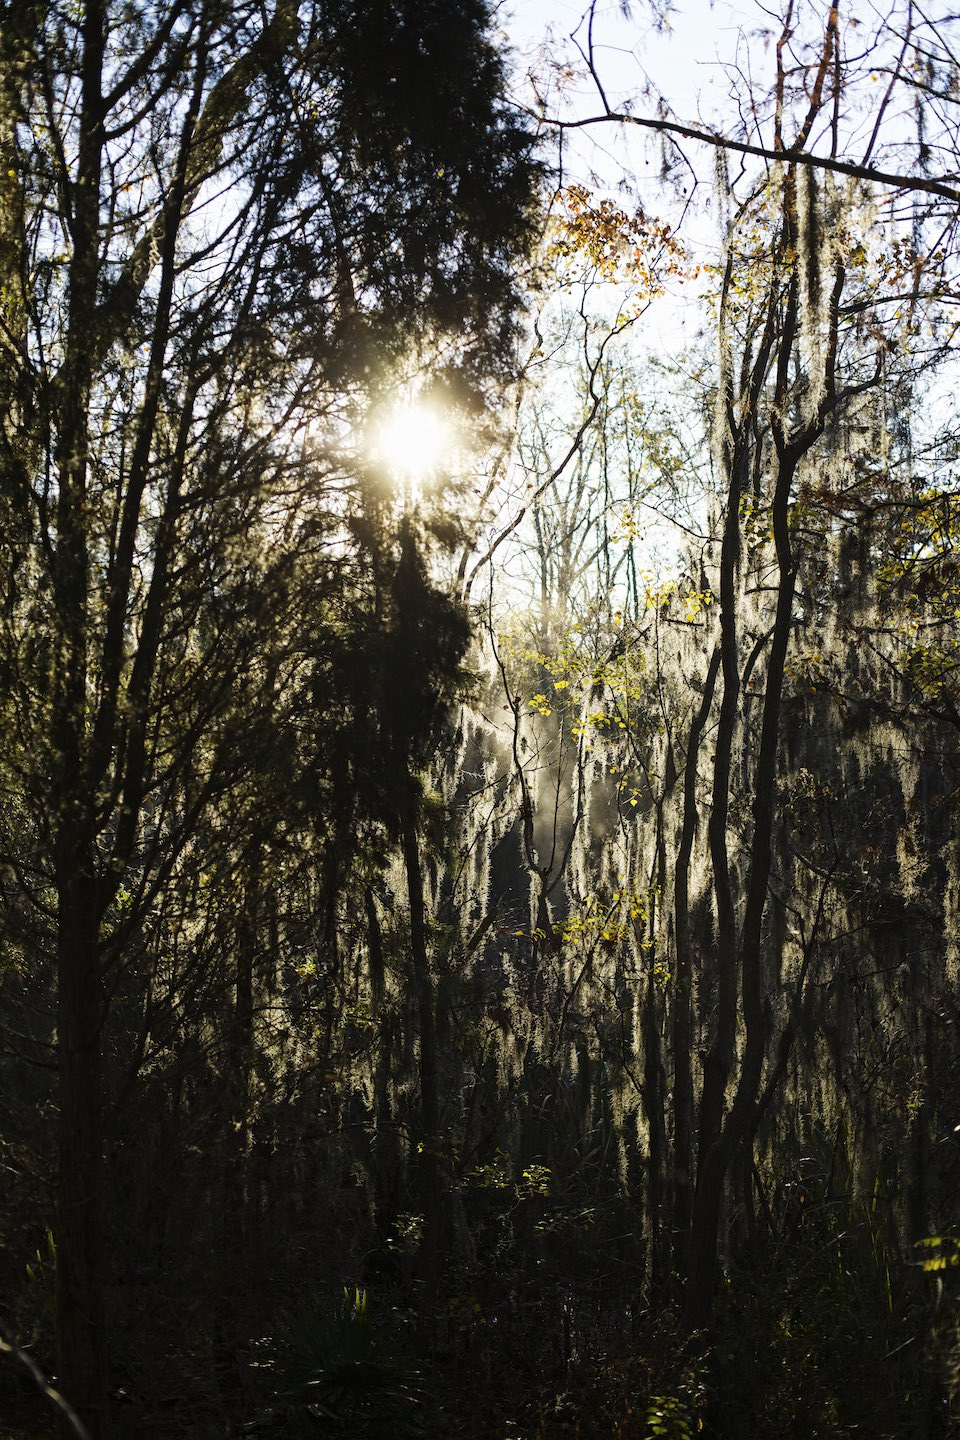 Sun shining through moss covered trees.